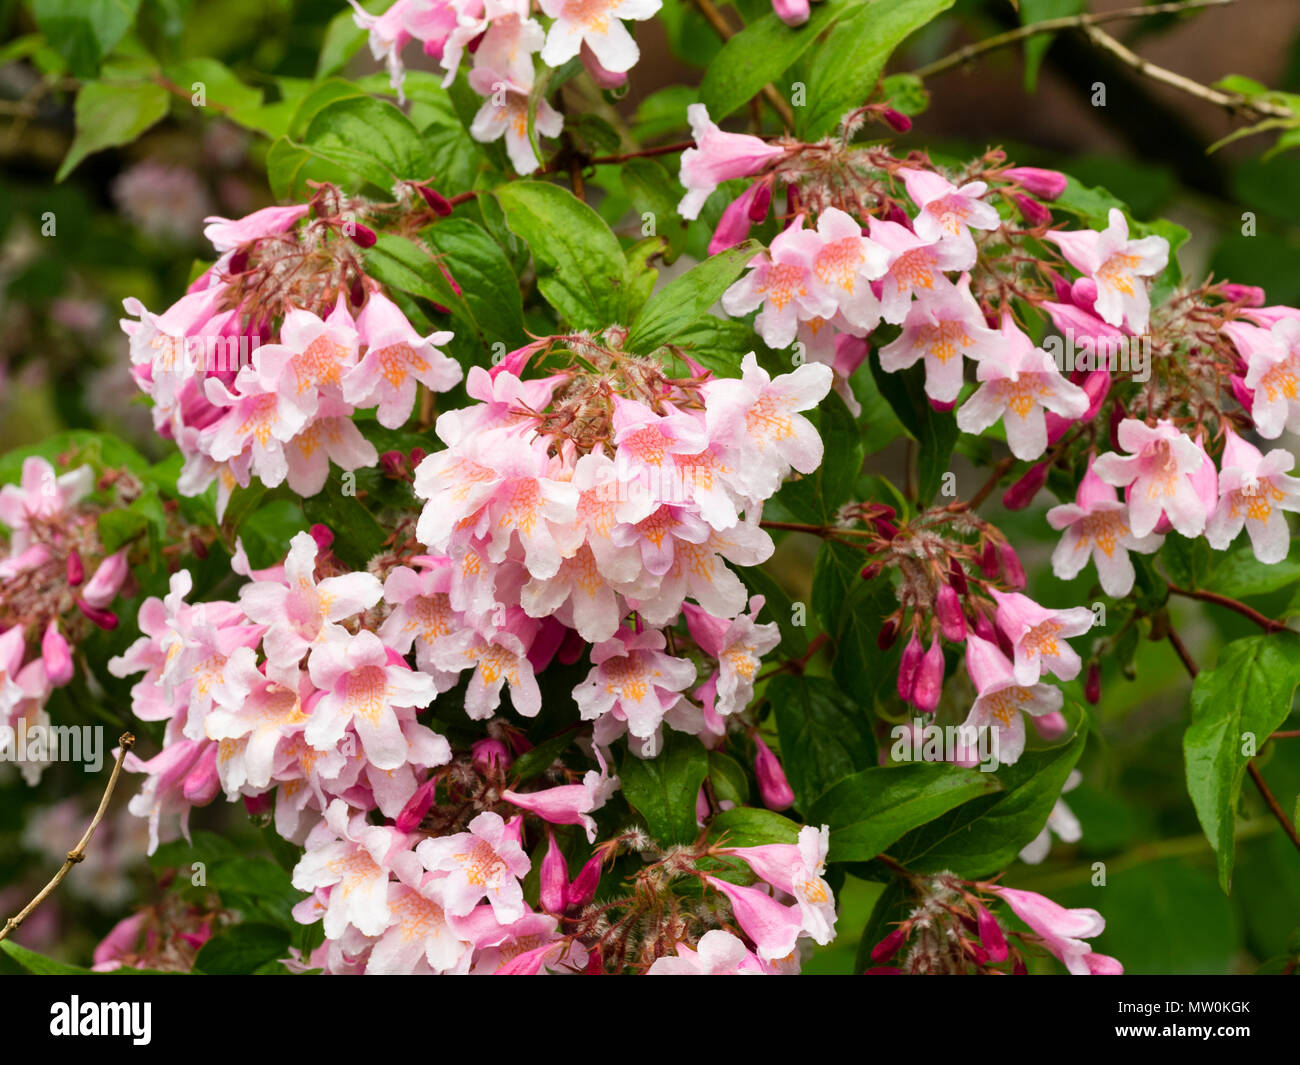 Close up of the pink flowers of the early summer blooming beauty close up of the pink flowers of the early summer blooming beauty bush kolkwitzia amabilis pink cloud mightylinksfo